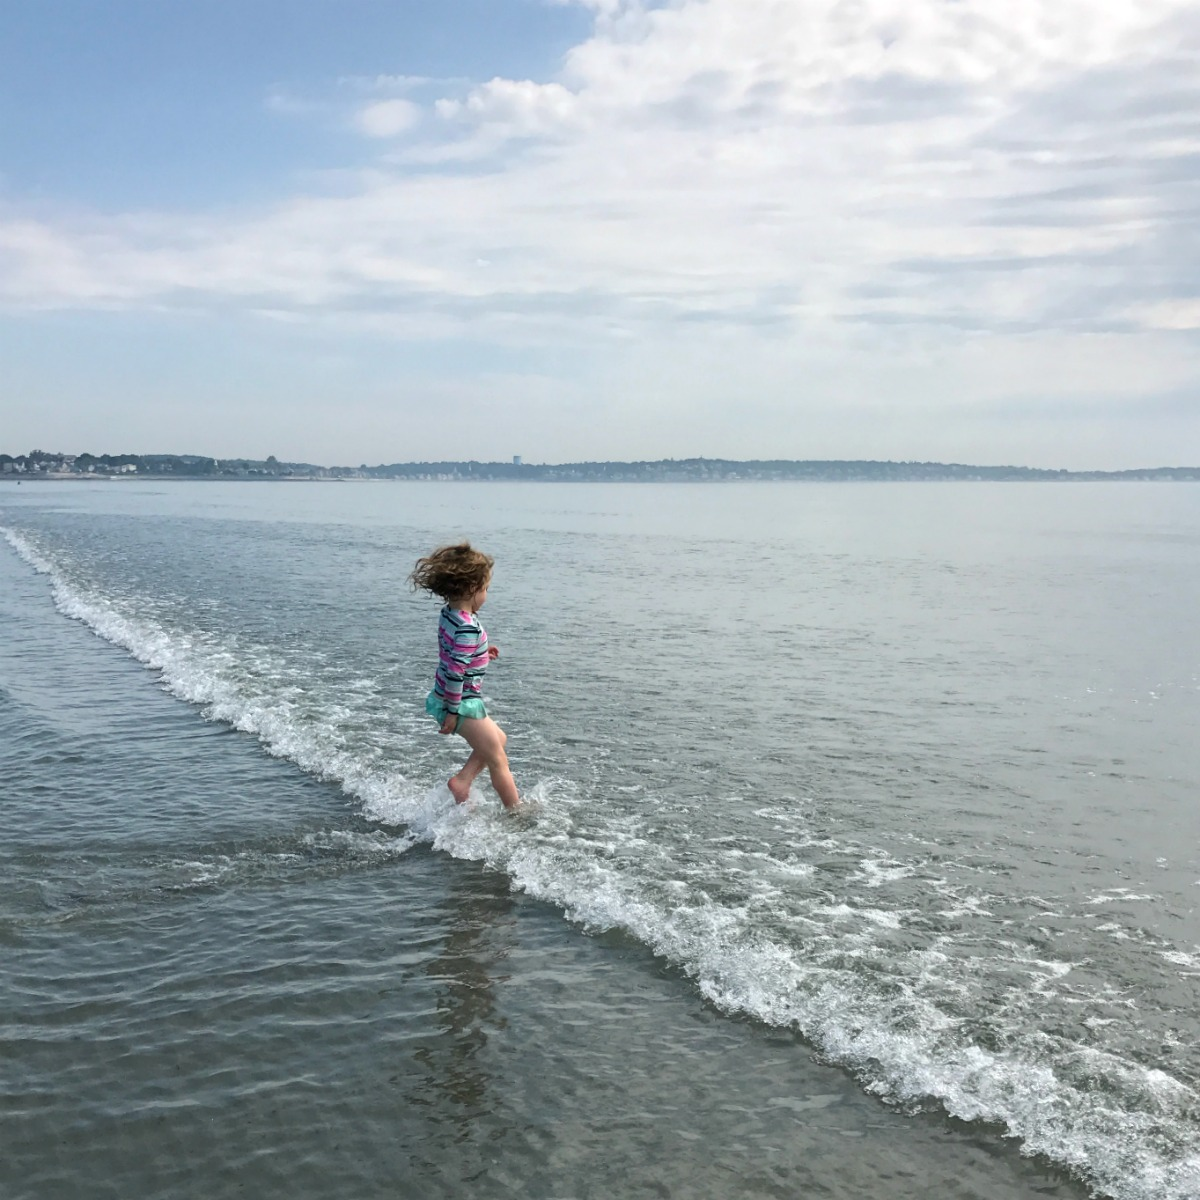 Snapshots from the beach 16